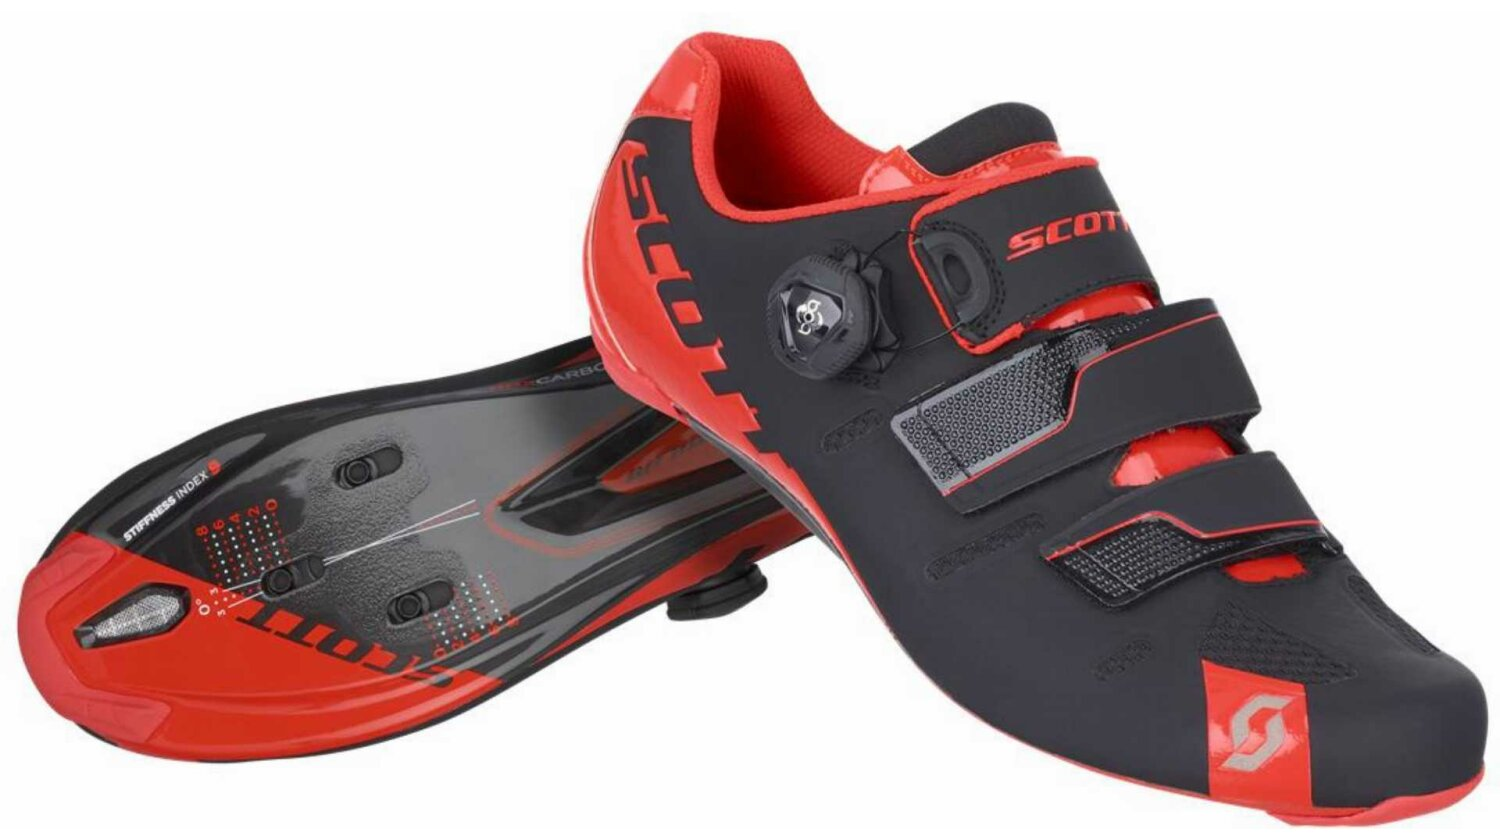 Scott Road Premium Schuh black/neon red gloss 41